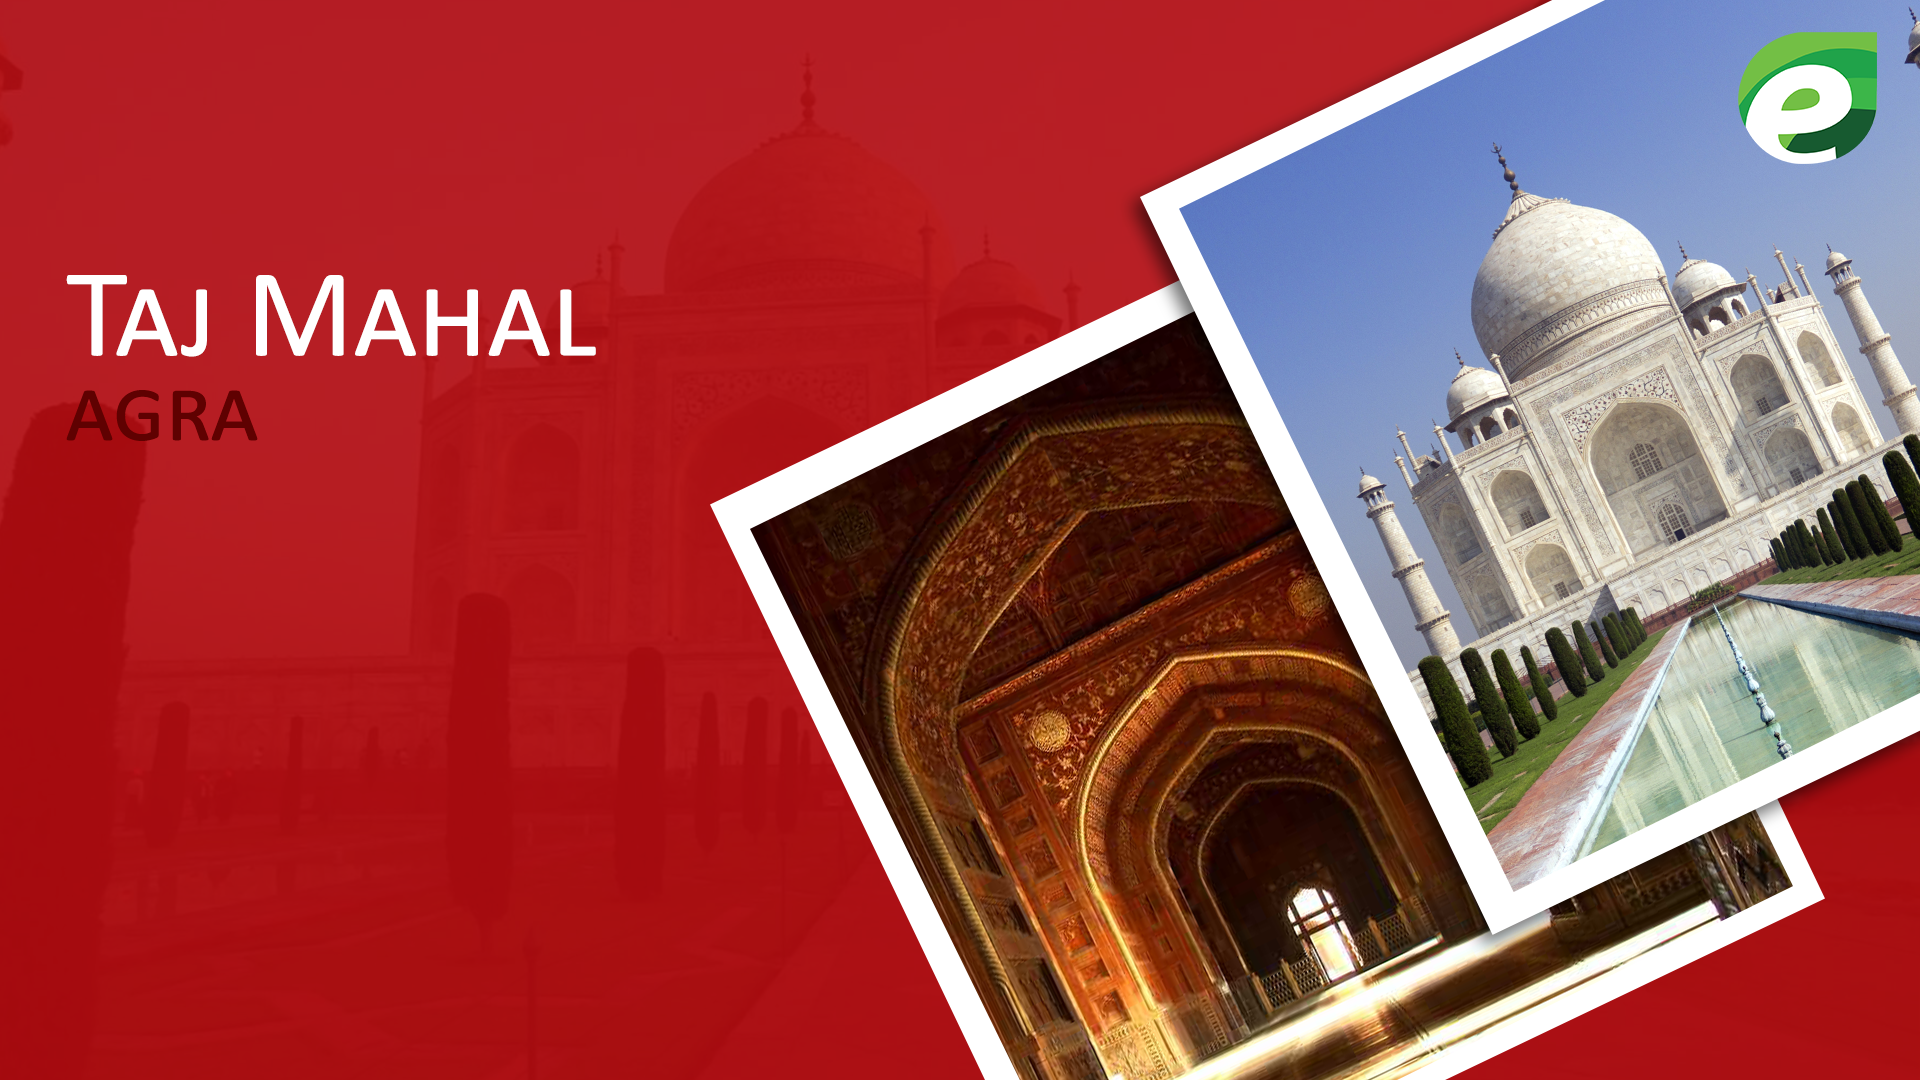 historical sites to visit- Taj Mahal